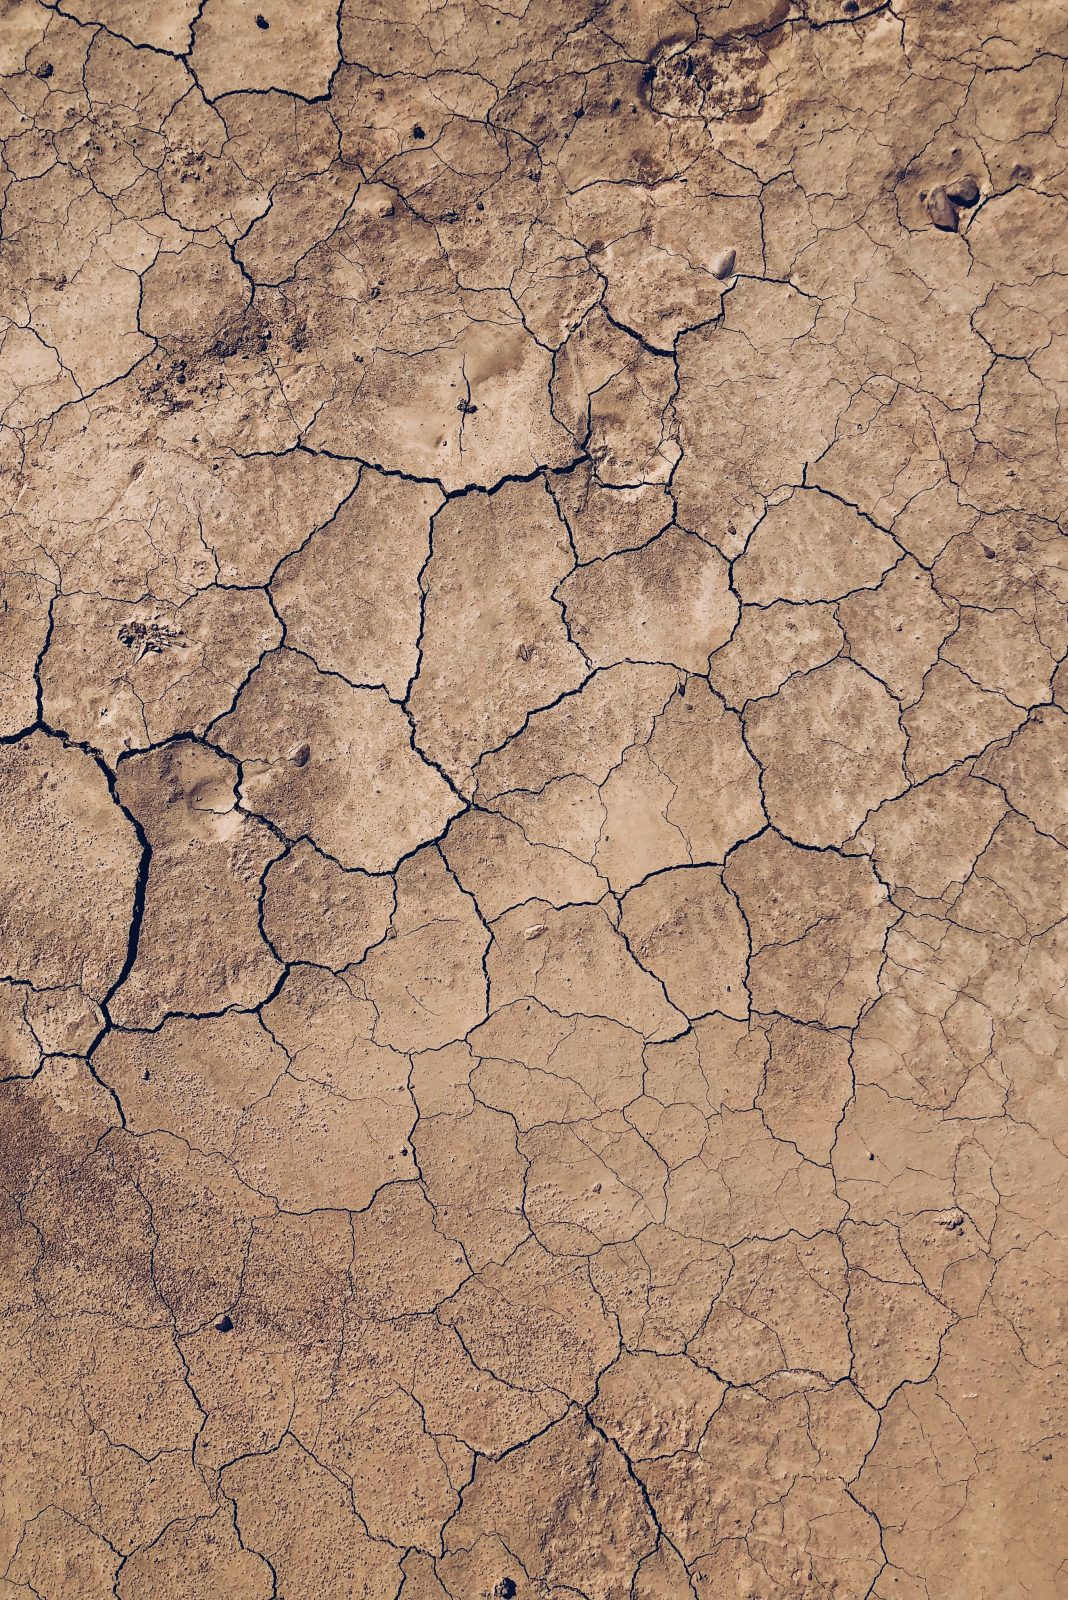 Good til the last drop: Colorado river's drought contingency plan